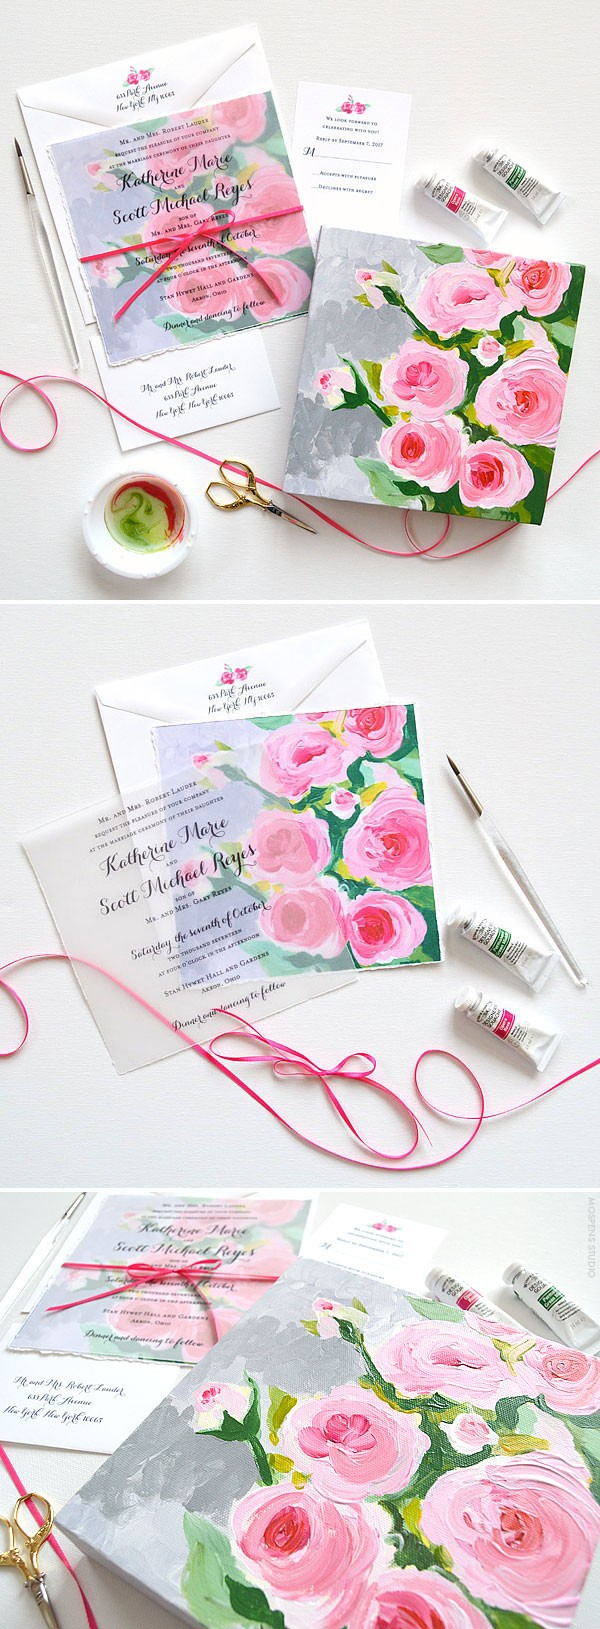 Hand painted fine art floral wedding invitations - www.mospensstudio.com